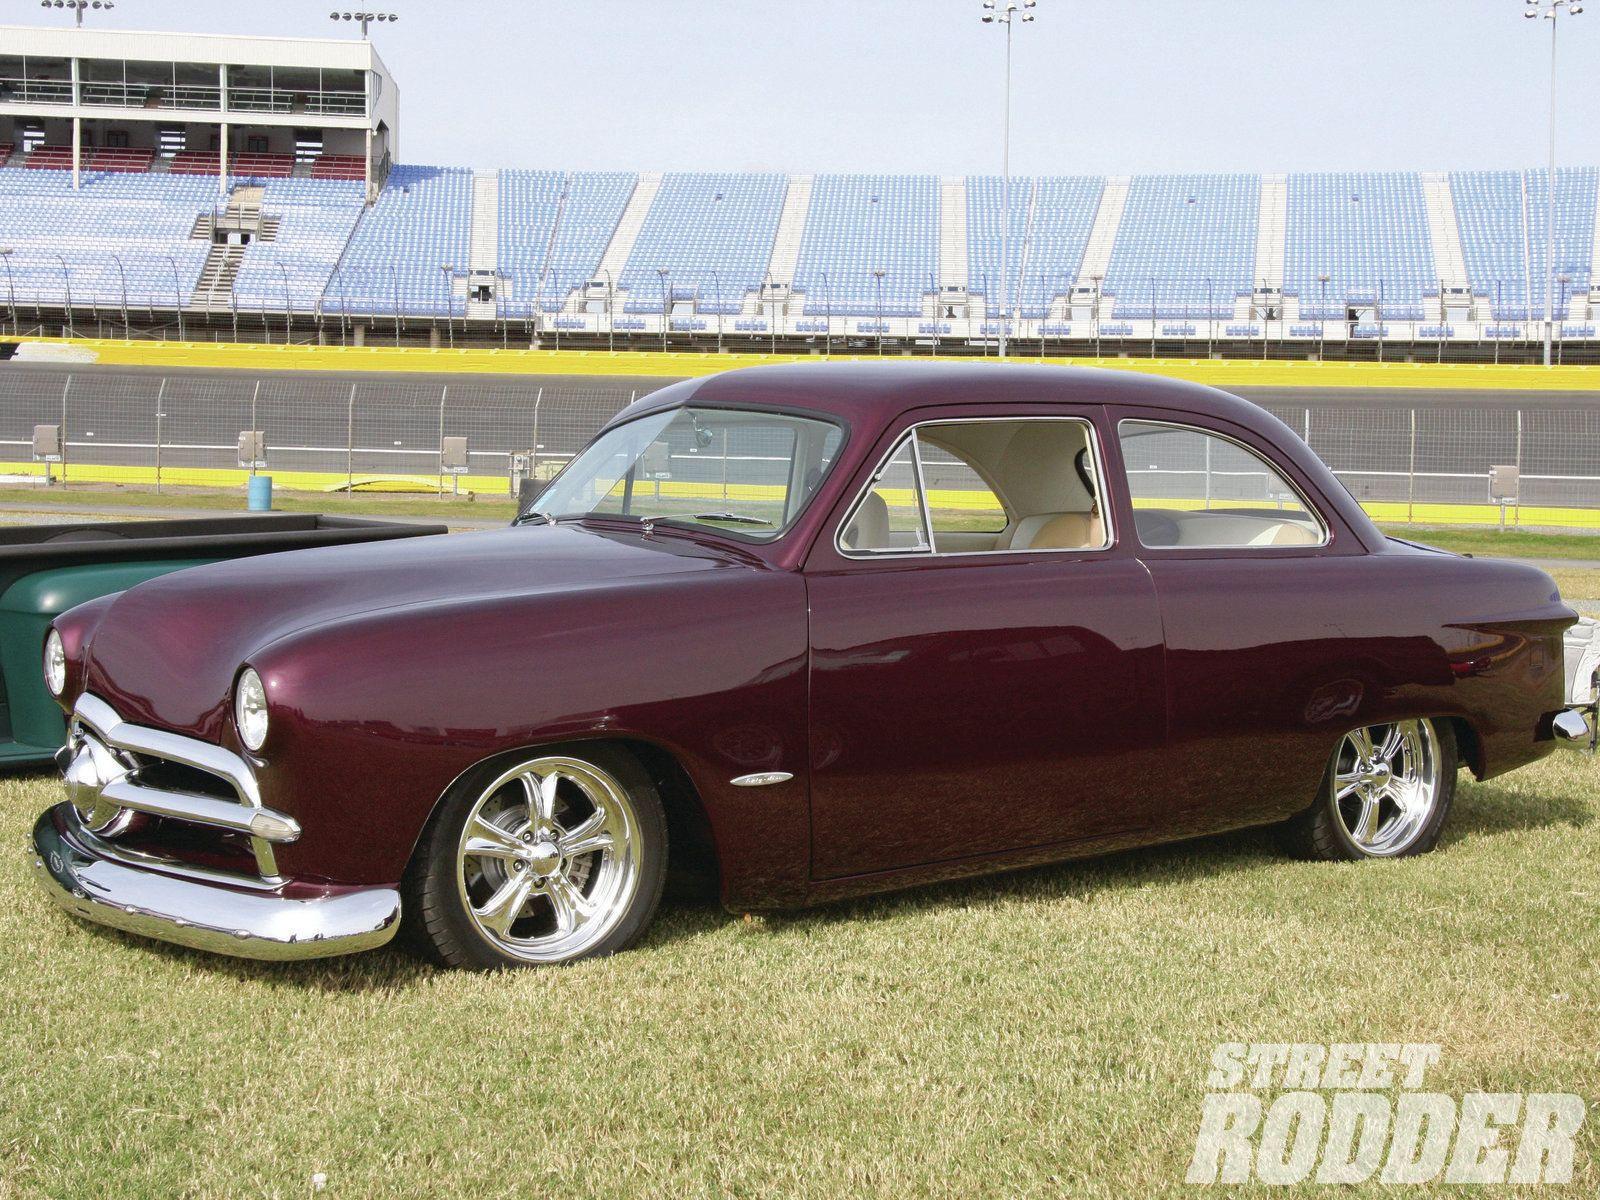 u002749 Ford custom & 49 Ford custom | Adrenaline Capsules | Pinterest | Ford Cars and ... markmcfarlin.com